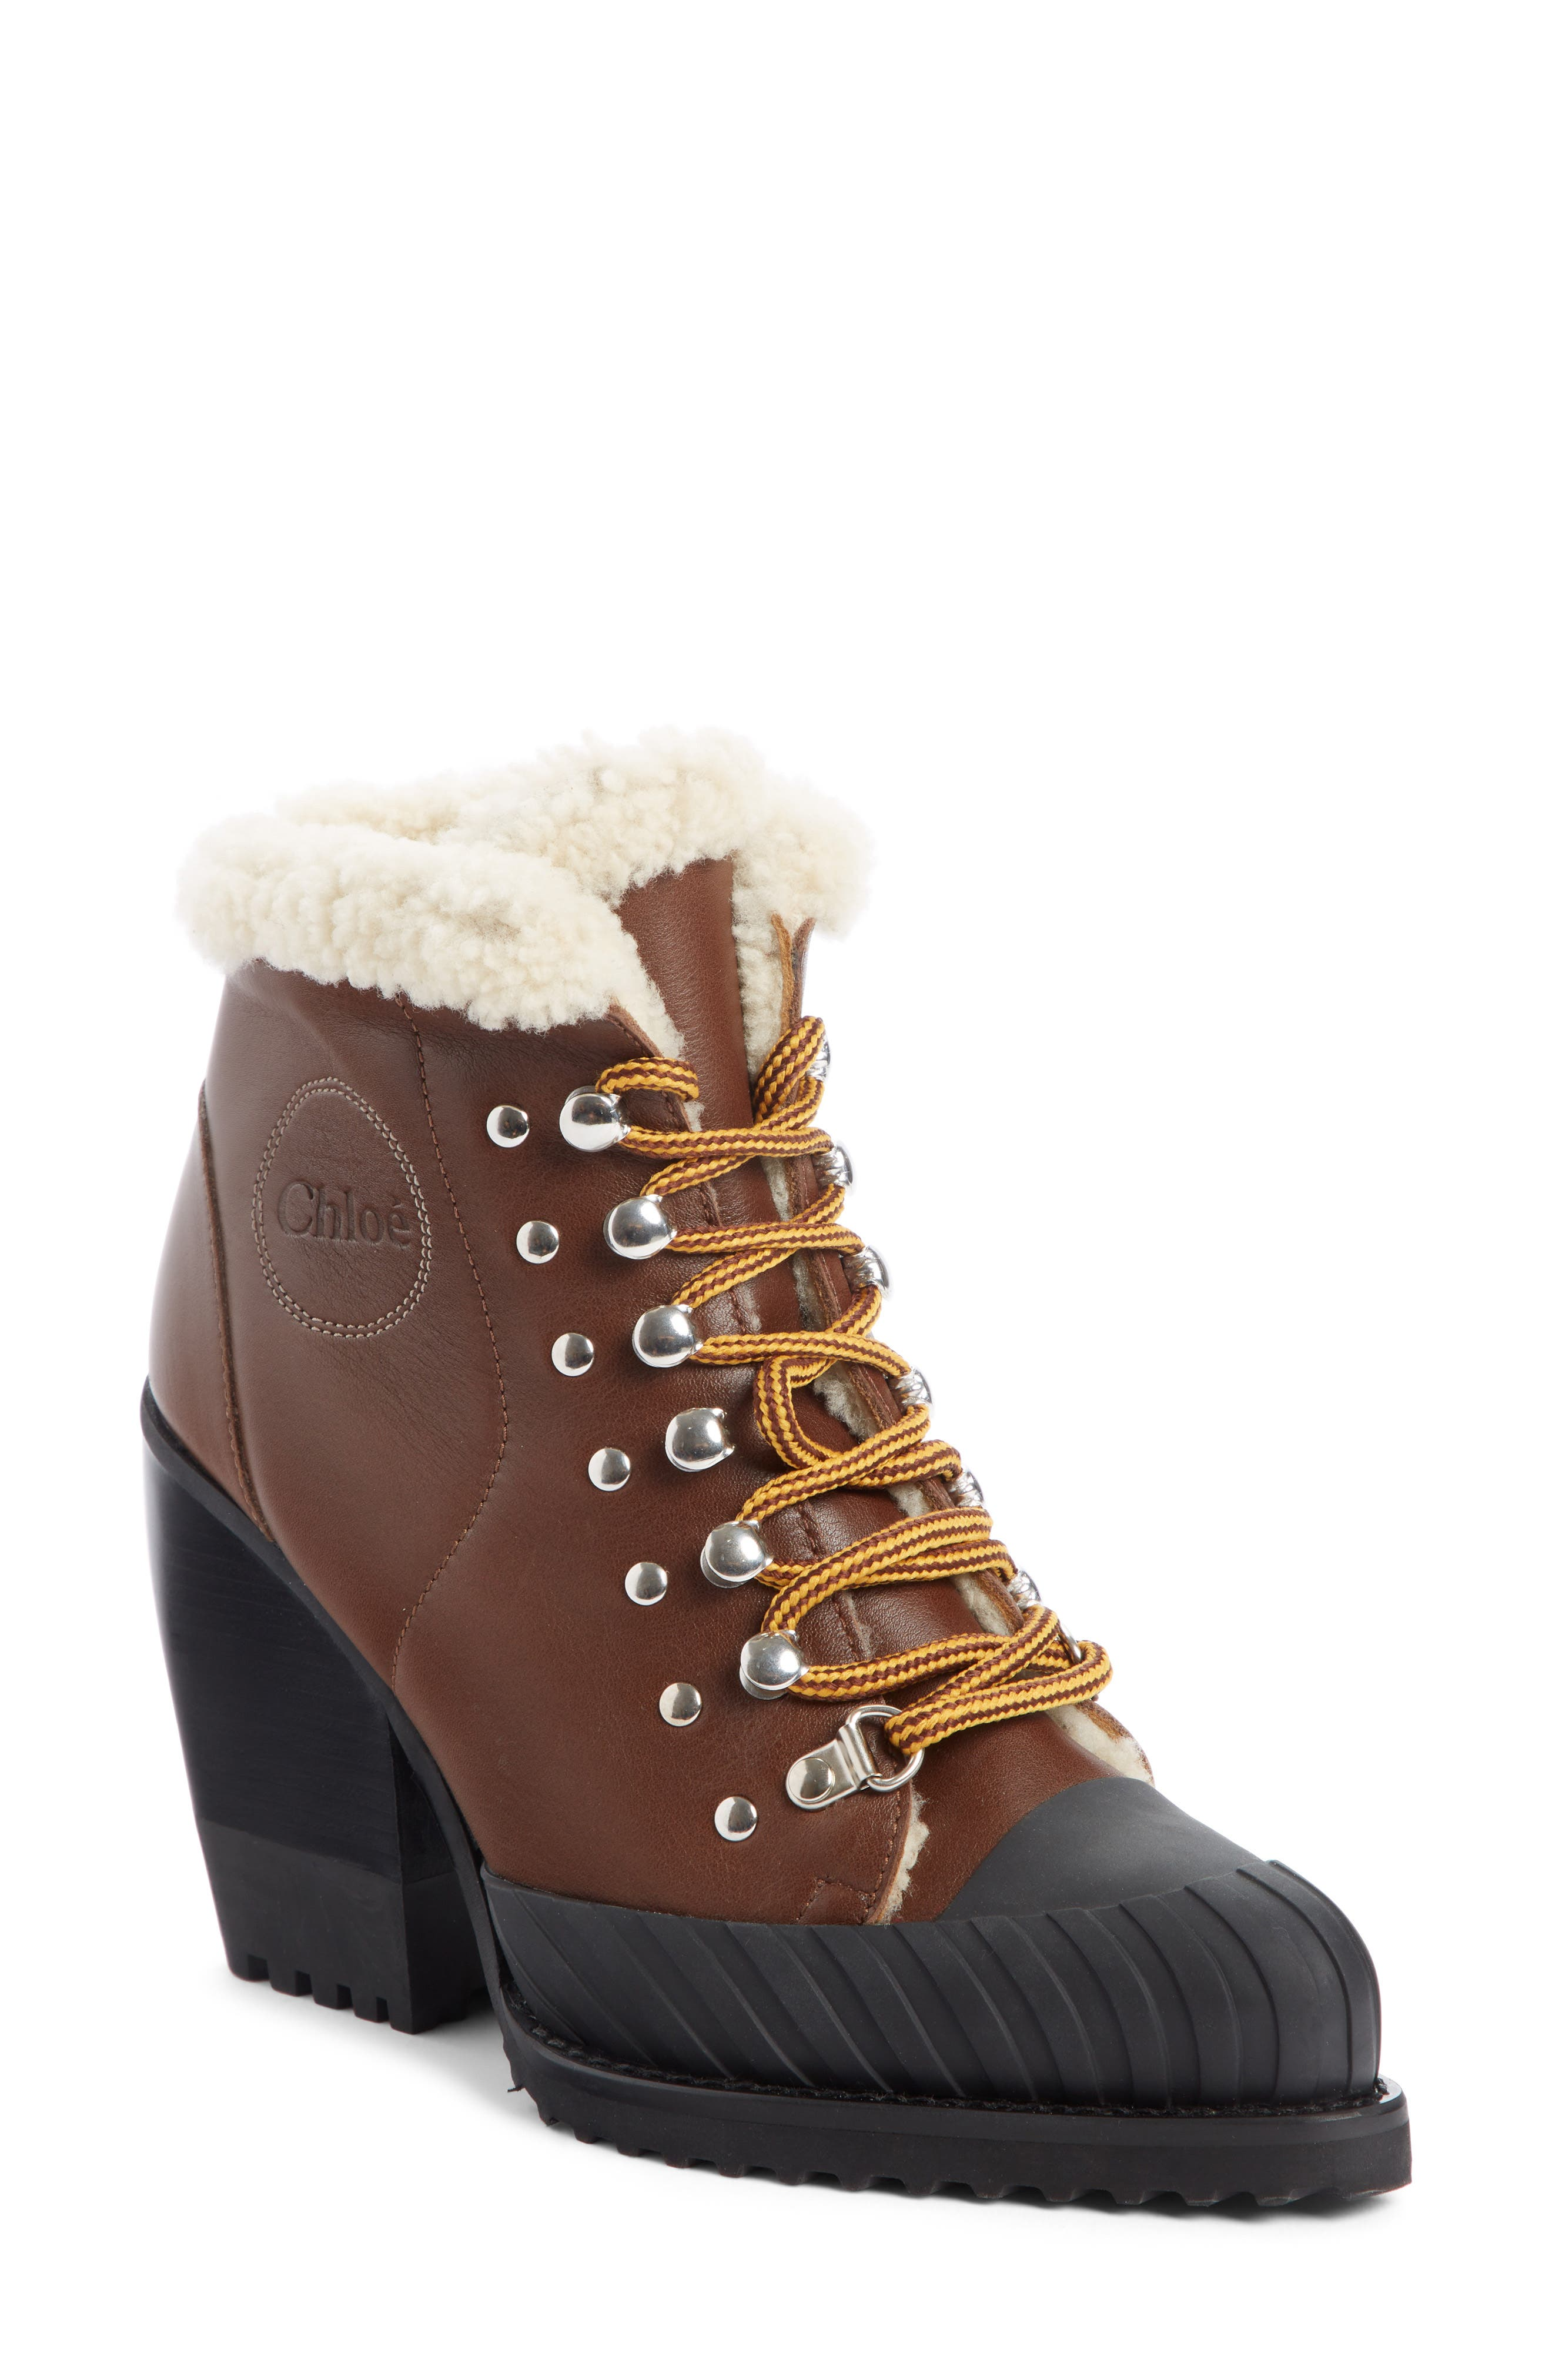 Rylee Genuine Shearling Lined Hiking Boot,                         Main,                         color, TRUE BROWN LEATHER